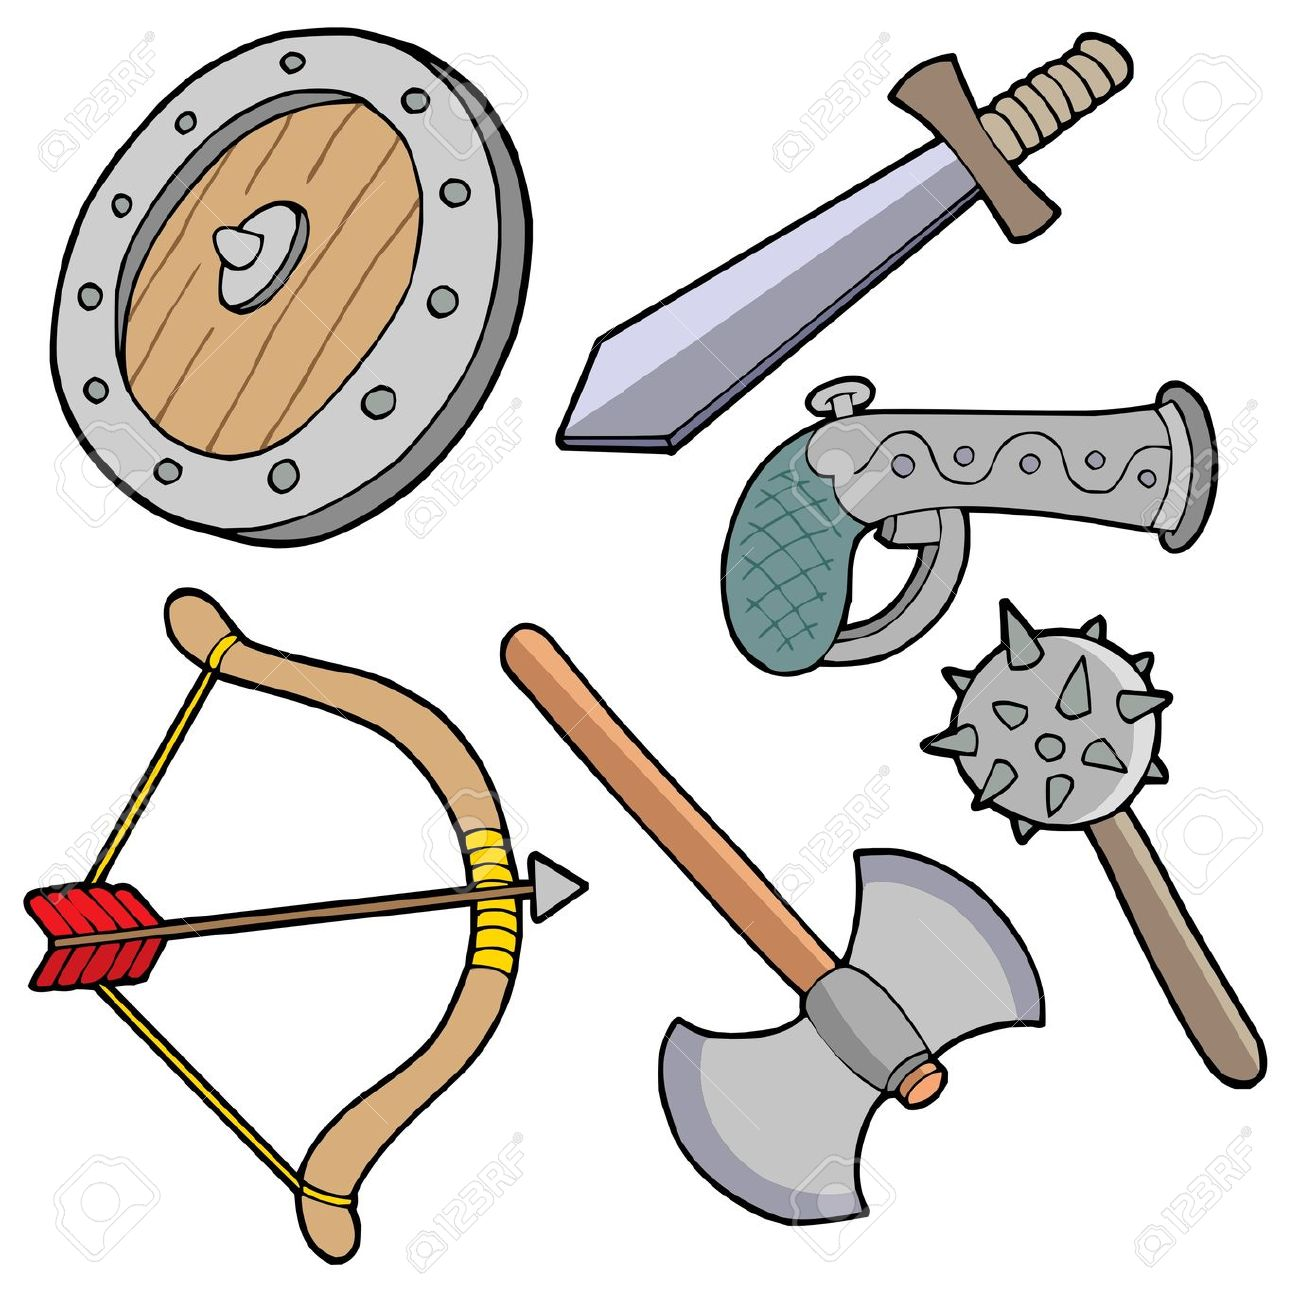 Weapon Clipart-weapon clipart-12